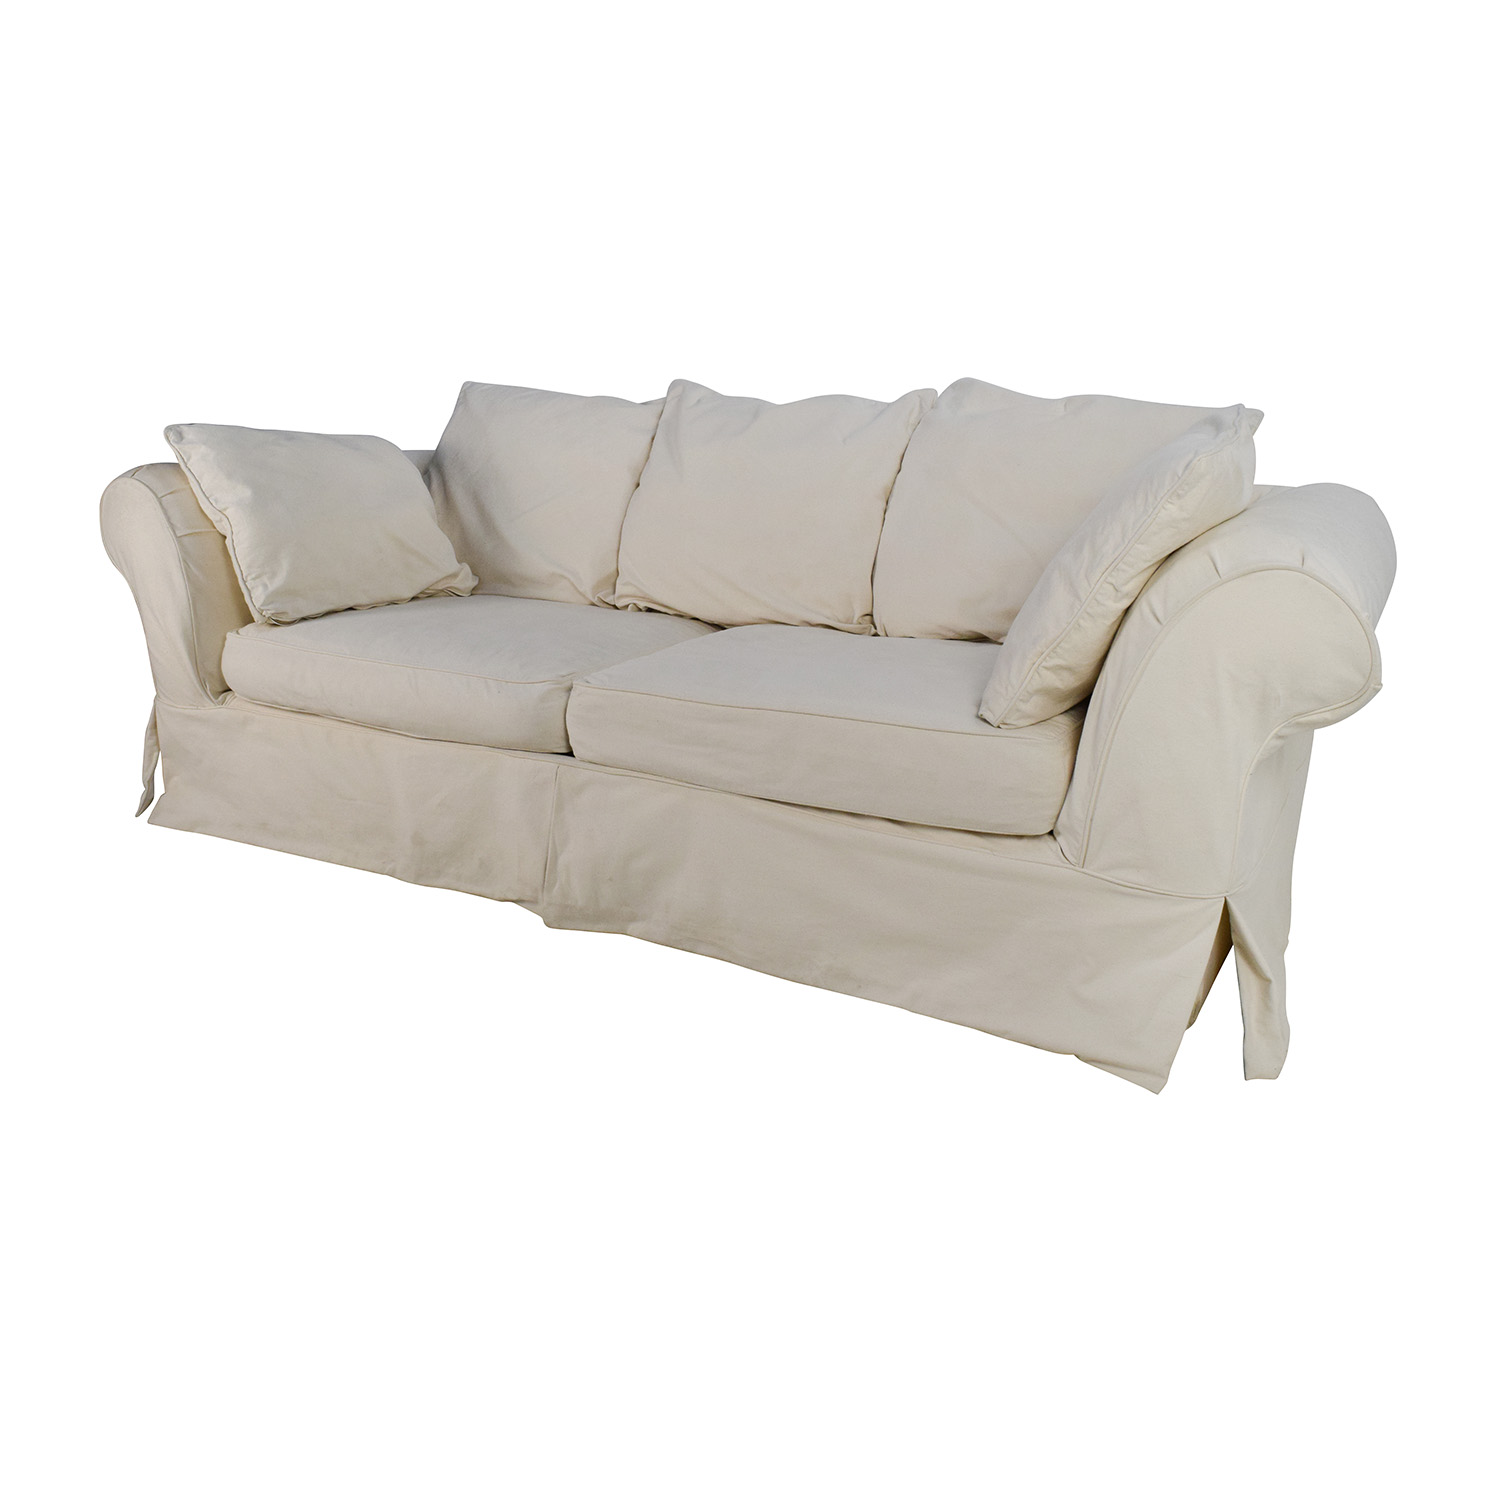 jennifer convertibles leather reclining sofa french style bedroom sofas 89 off